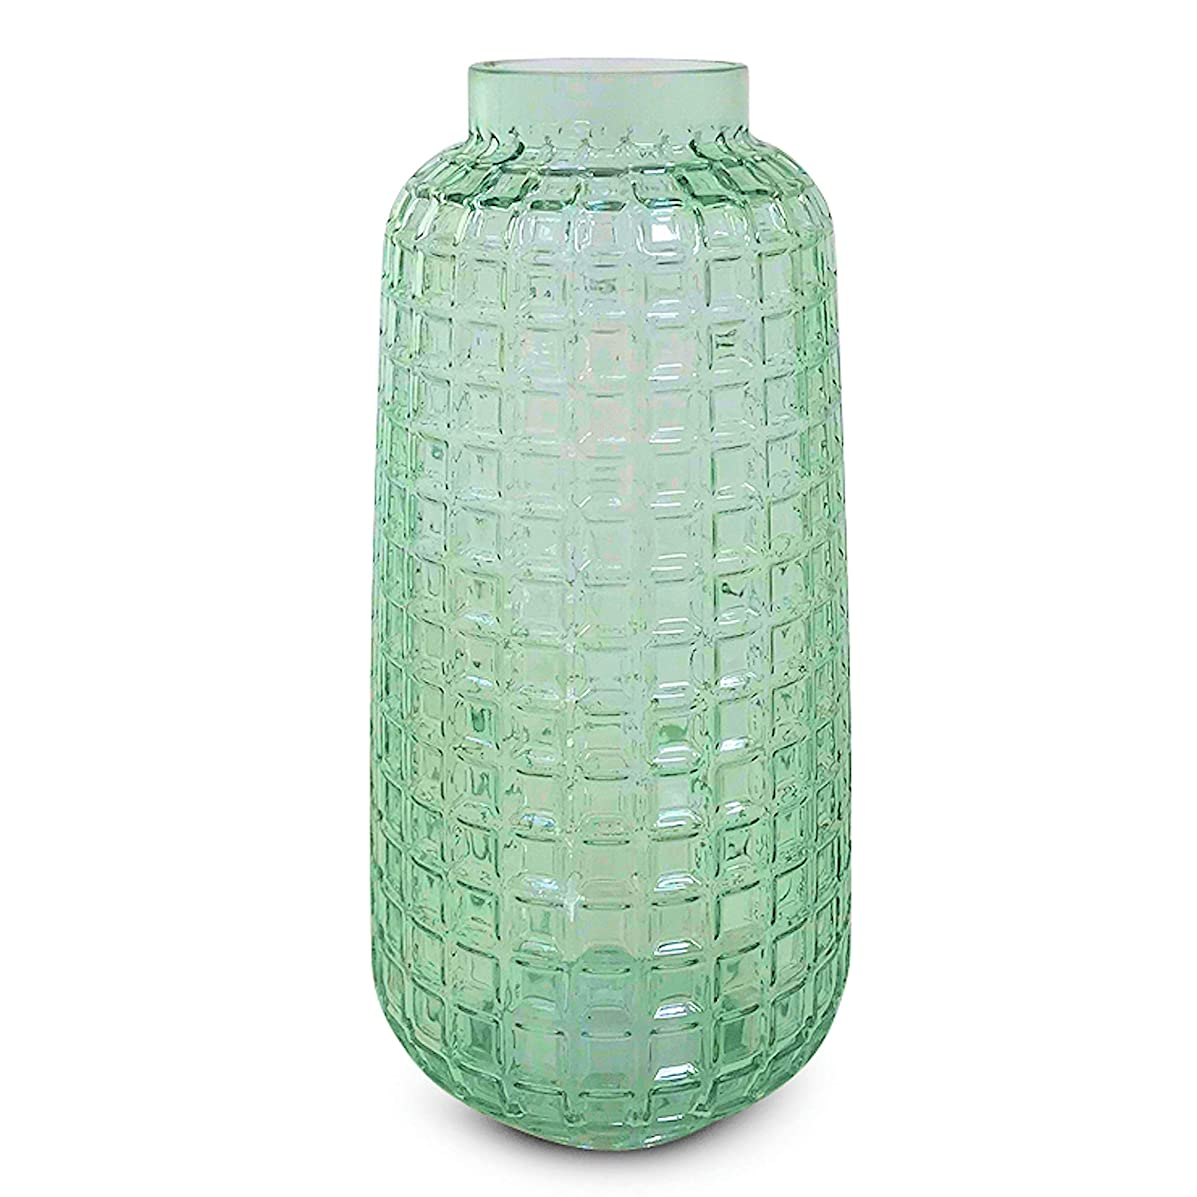 WHW Whole House Worlds Farmers Market Spring Vase, Rustic Apple Green, Forest Spring Time Themes, Decorative Faceted Glass, 10 1/4 Inches Tall